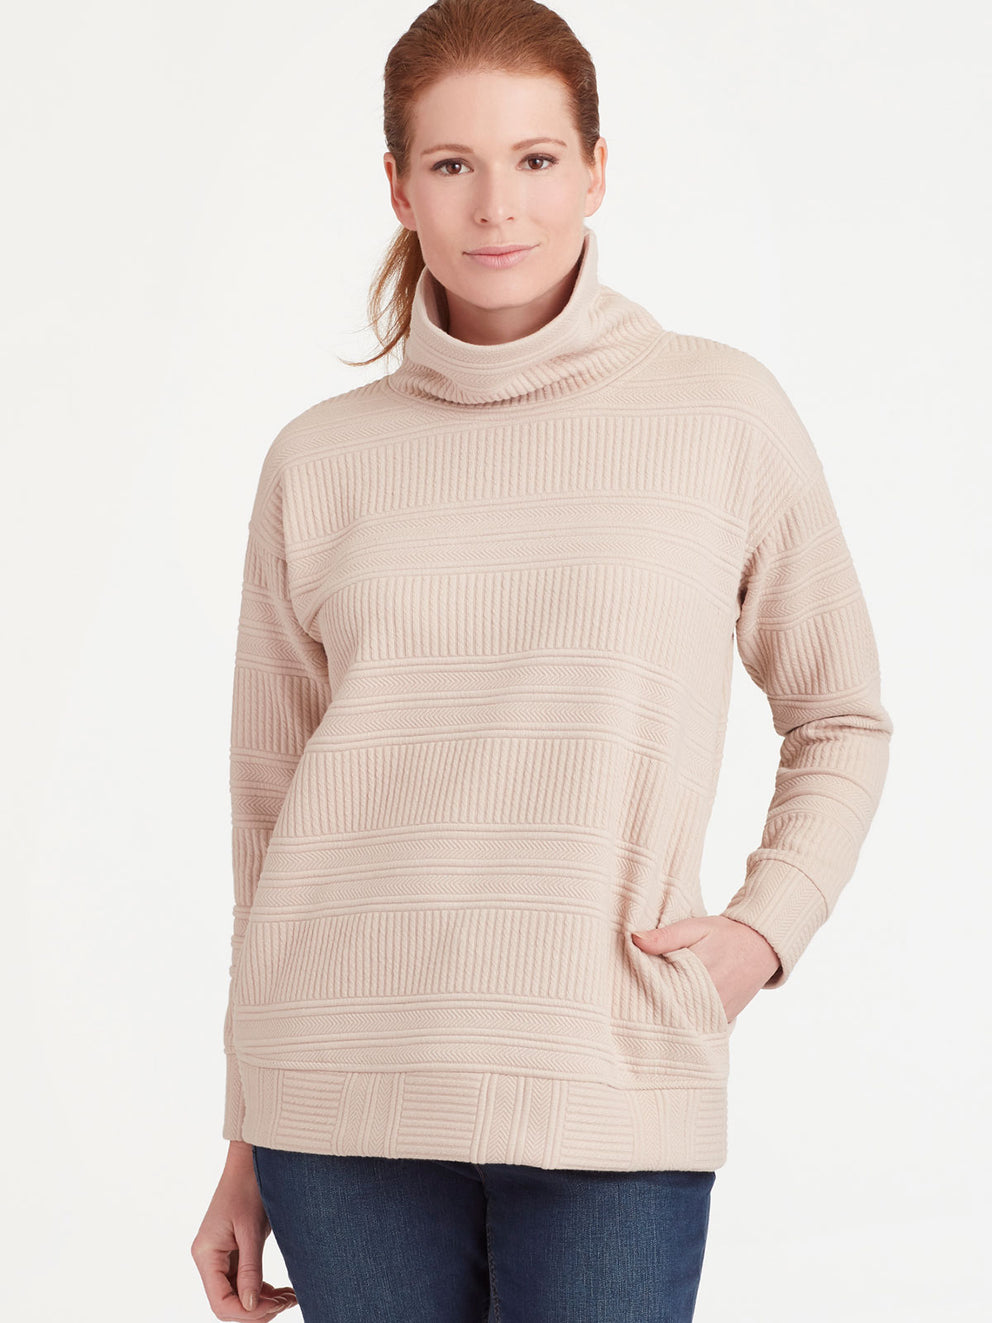 The Jones New York Quilted Turtleneck in color Pebble - Image Position 1